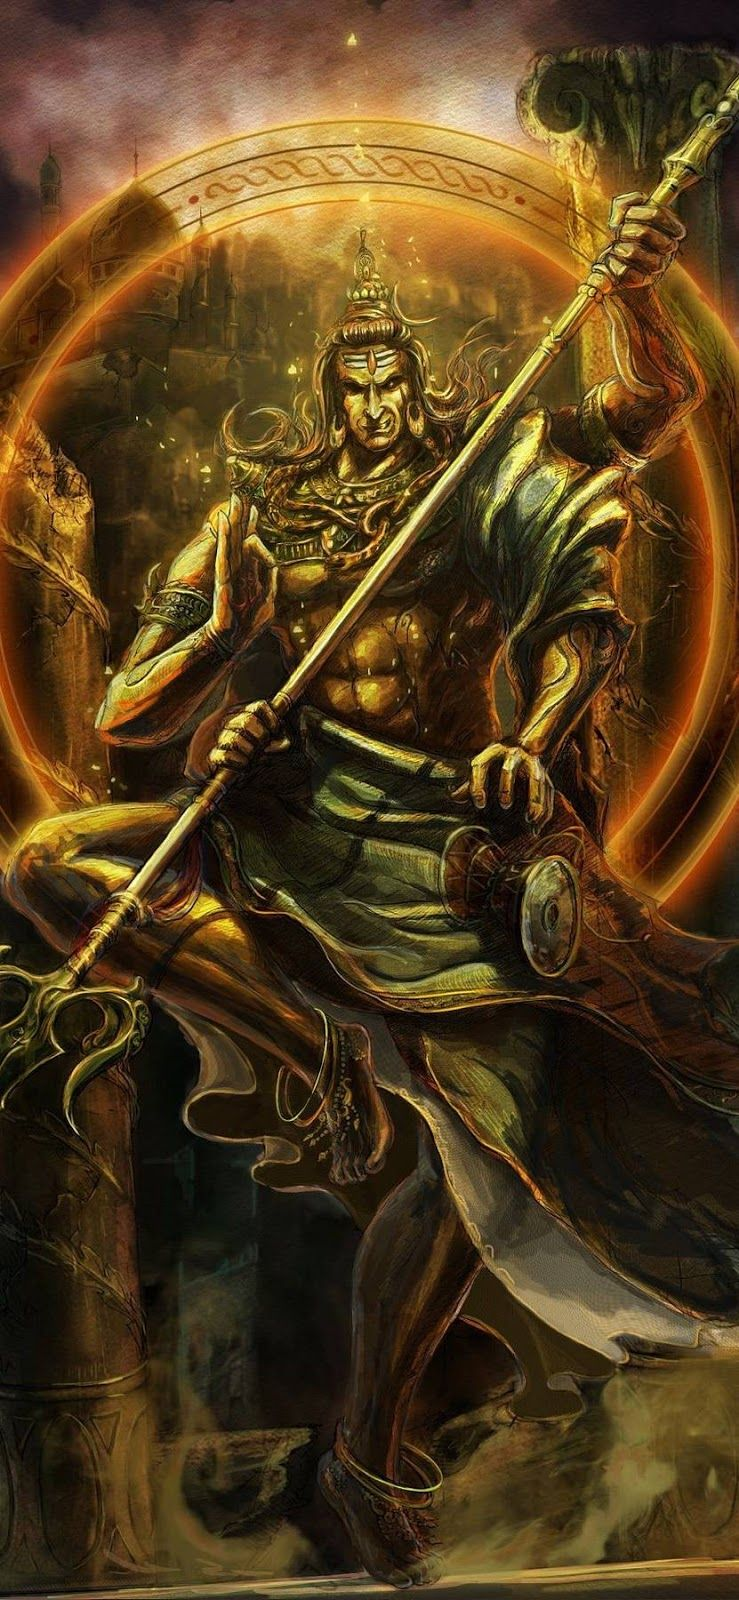 Most Unique And Ultra Hd Shiva Wallpapers Hindu God Mahadev Full Hd Wallpaper For Mobile Screen M In 2020 Mahadev Hd Wallpaper Lord Shiva Hd Wallpaper Shiva Wallpaper